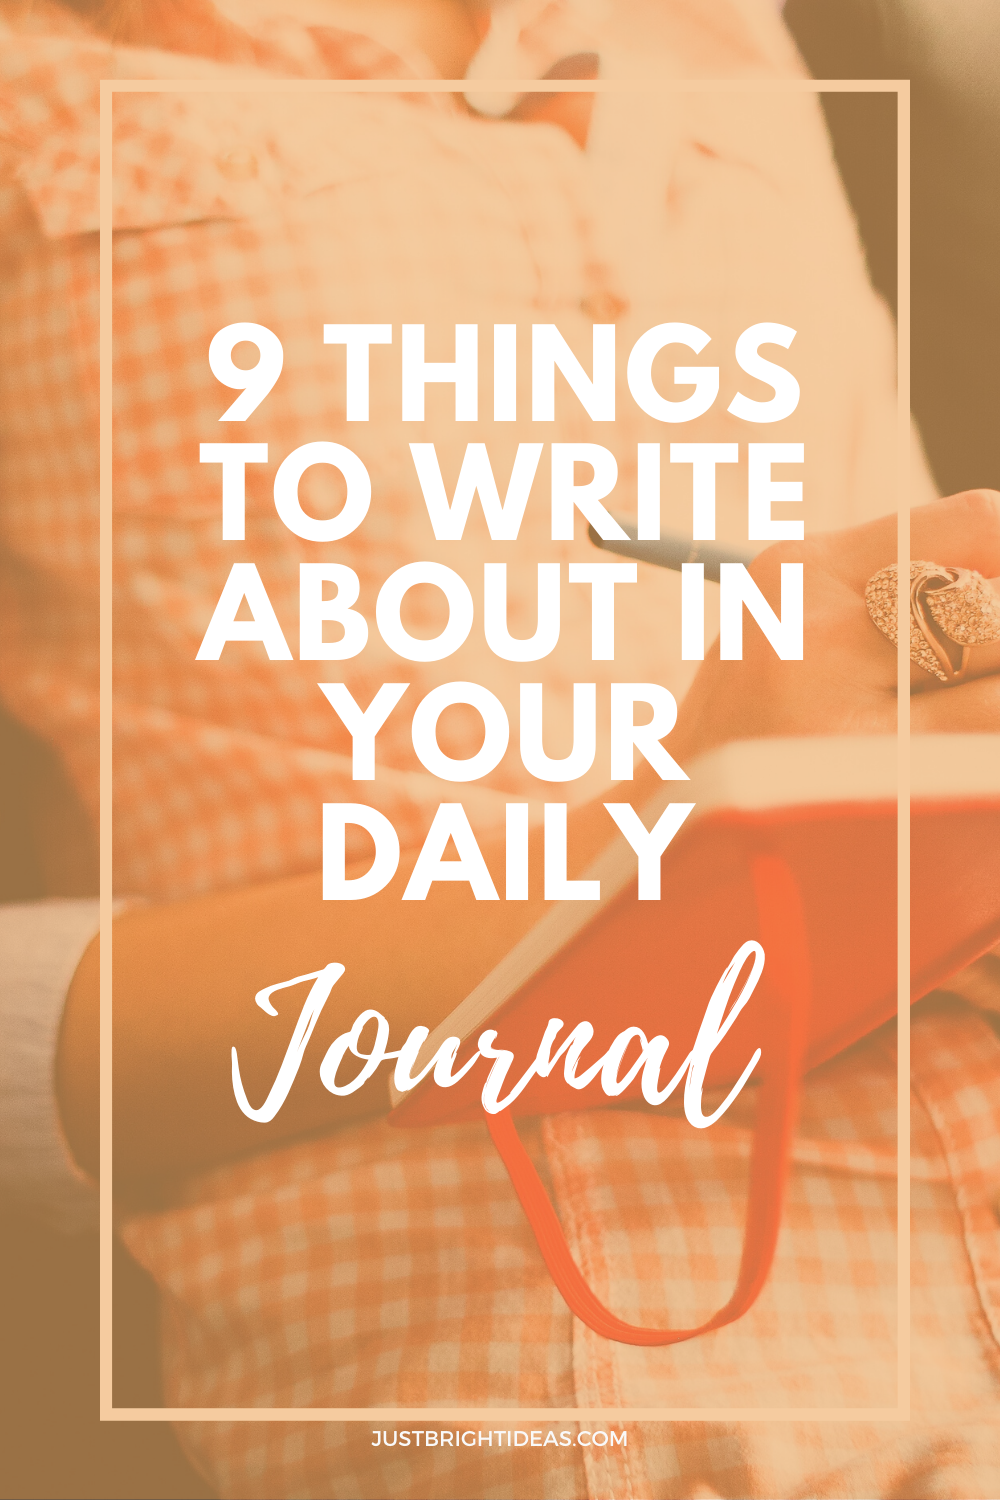 Never underestimate the power of keeping a daily journal - and if you need some ideas on what to write about we've got 9 things you might not of thought of!